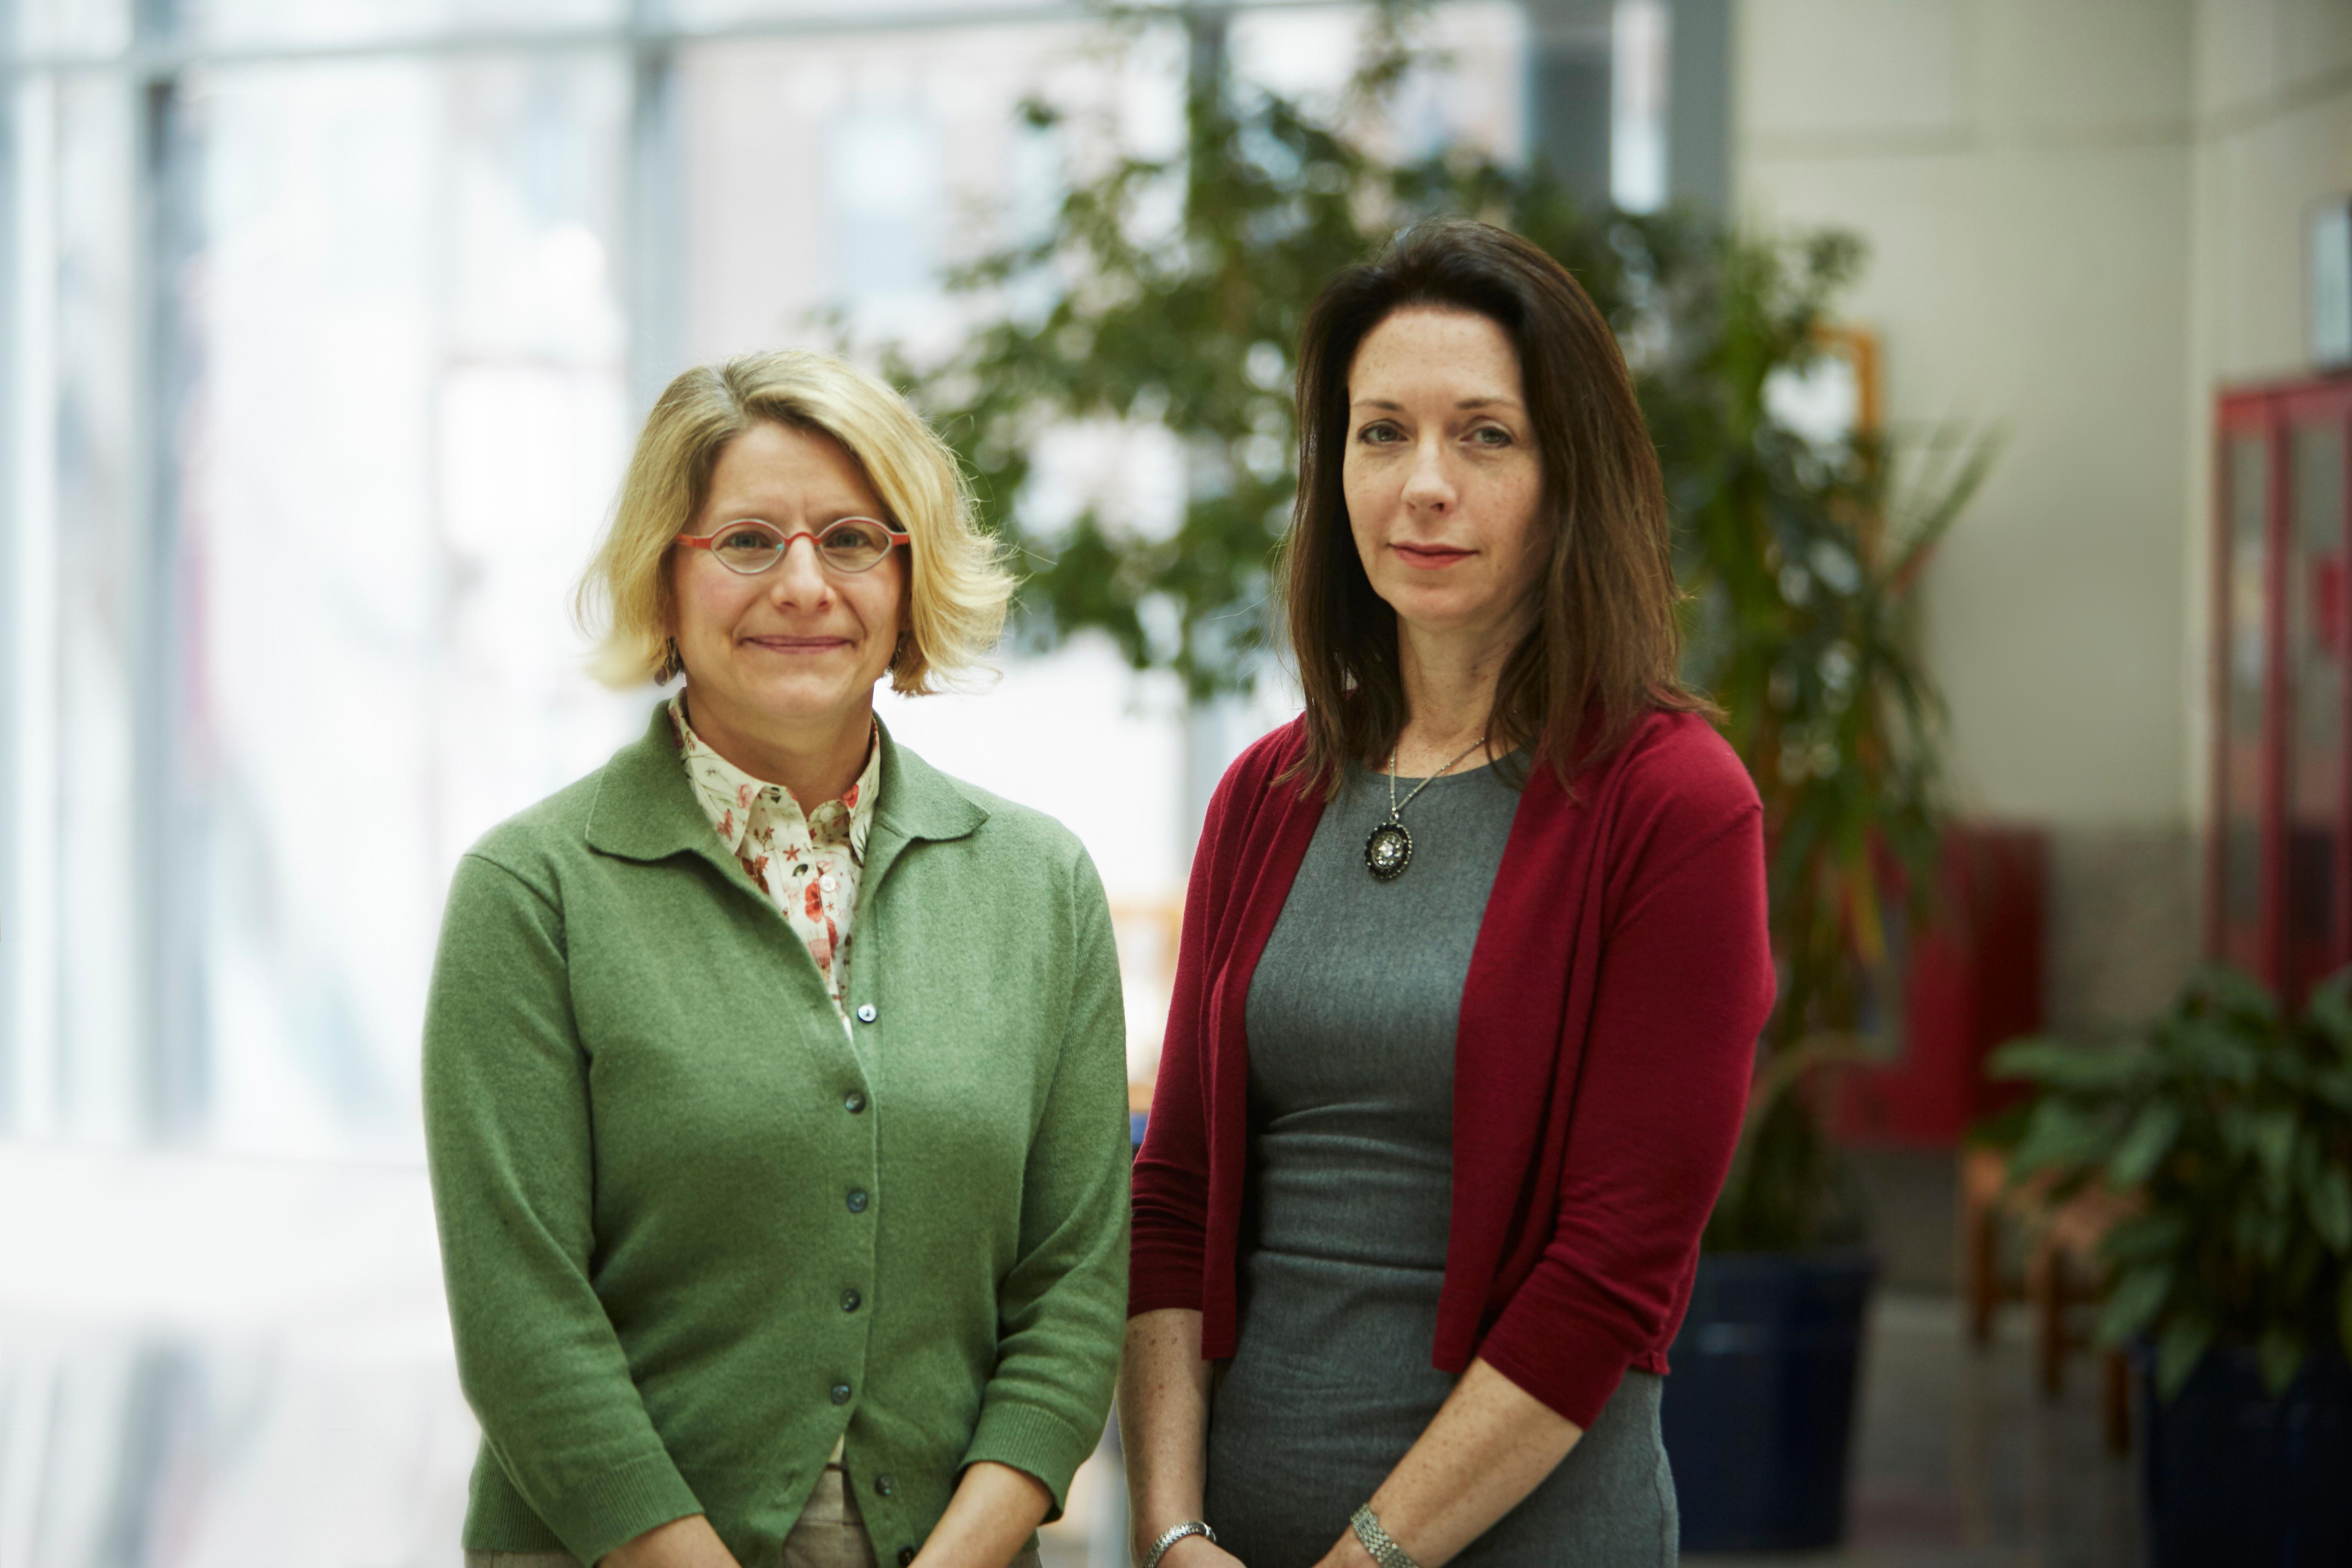 Andrea Roberts, research associate in the Department of Social and Behavioral Sciences (left) and Karestan Chase Koenen, professor of psychiatric epidemiology in the Department of Epidemiology.